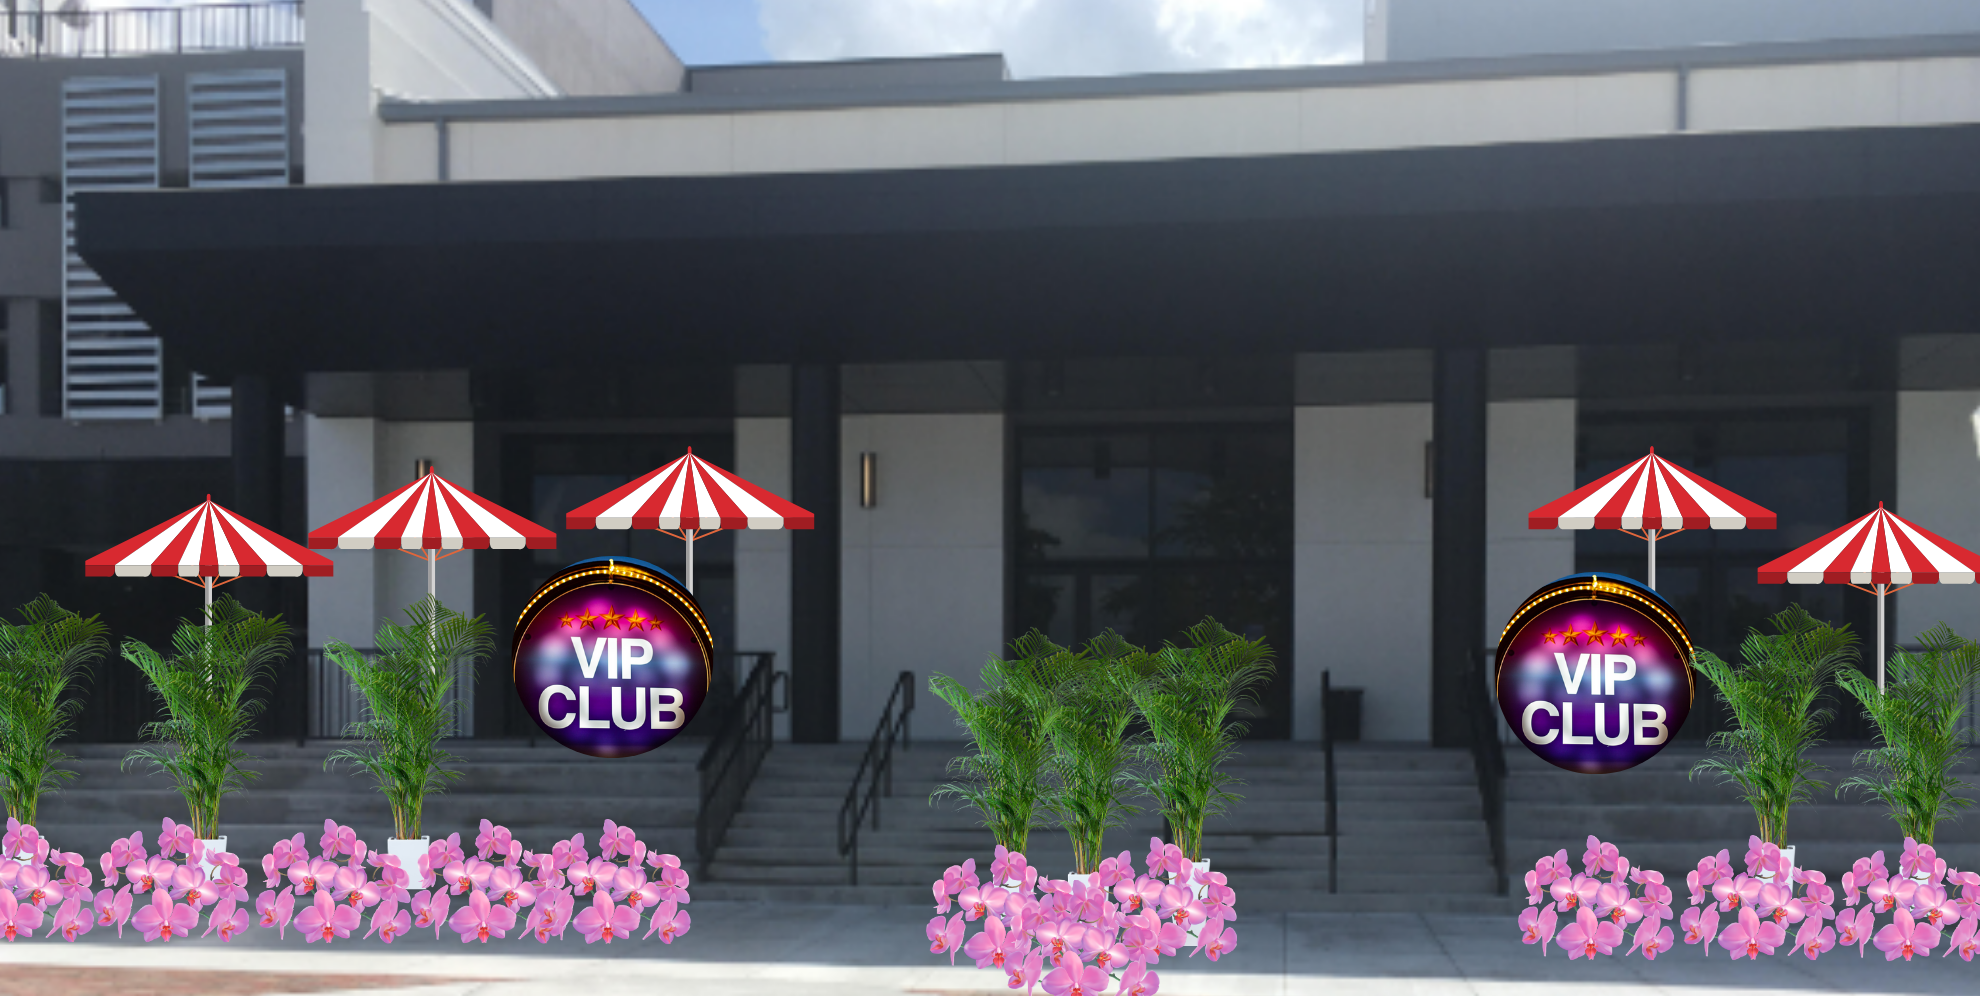 VIP Club Exterior Rendition - cropped